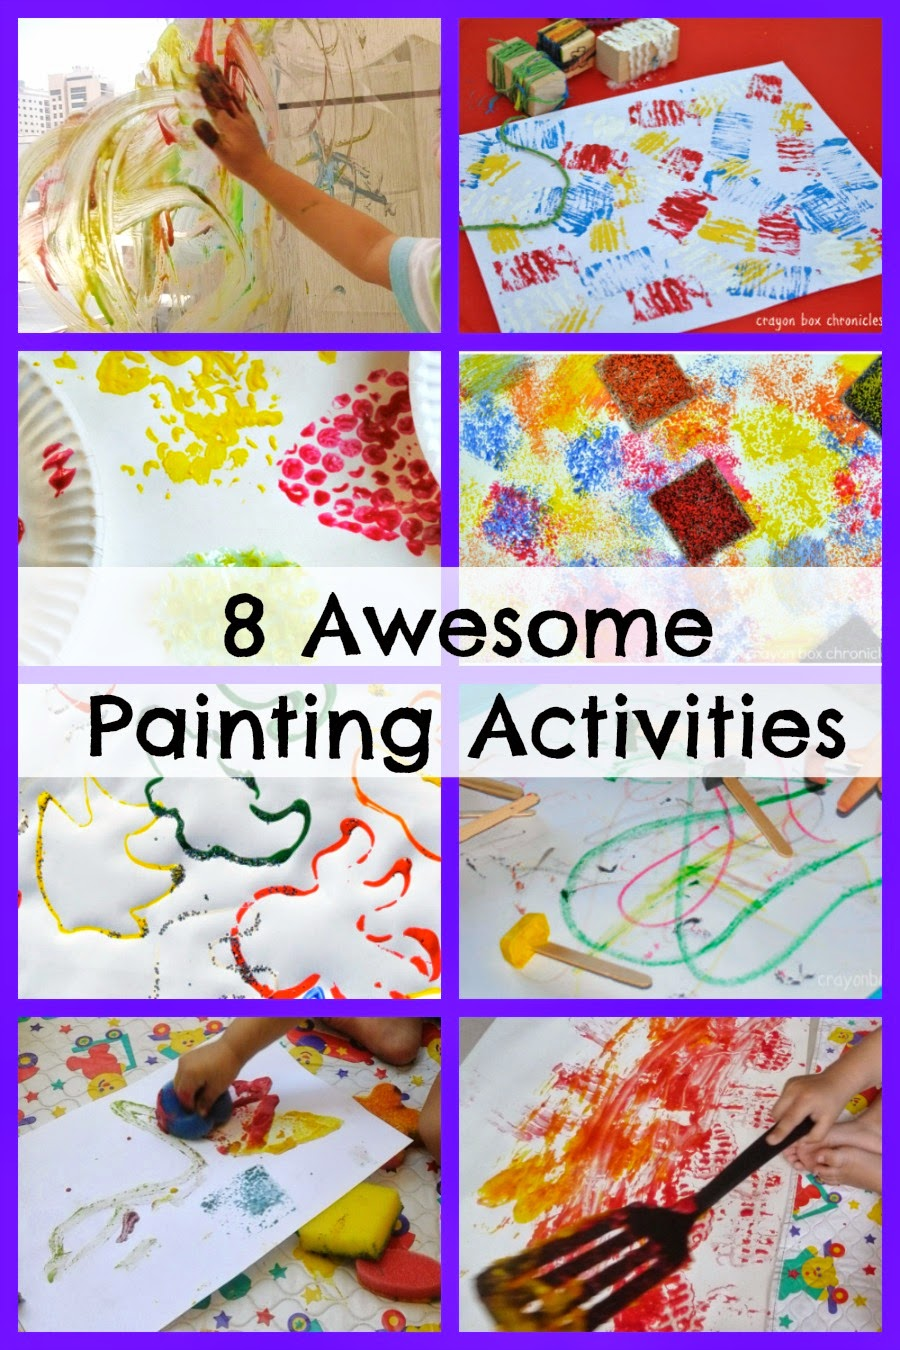 Eight Awesome Painting Activities